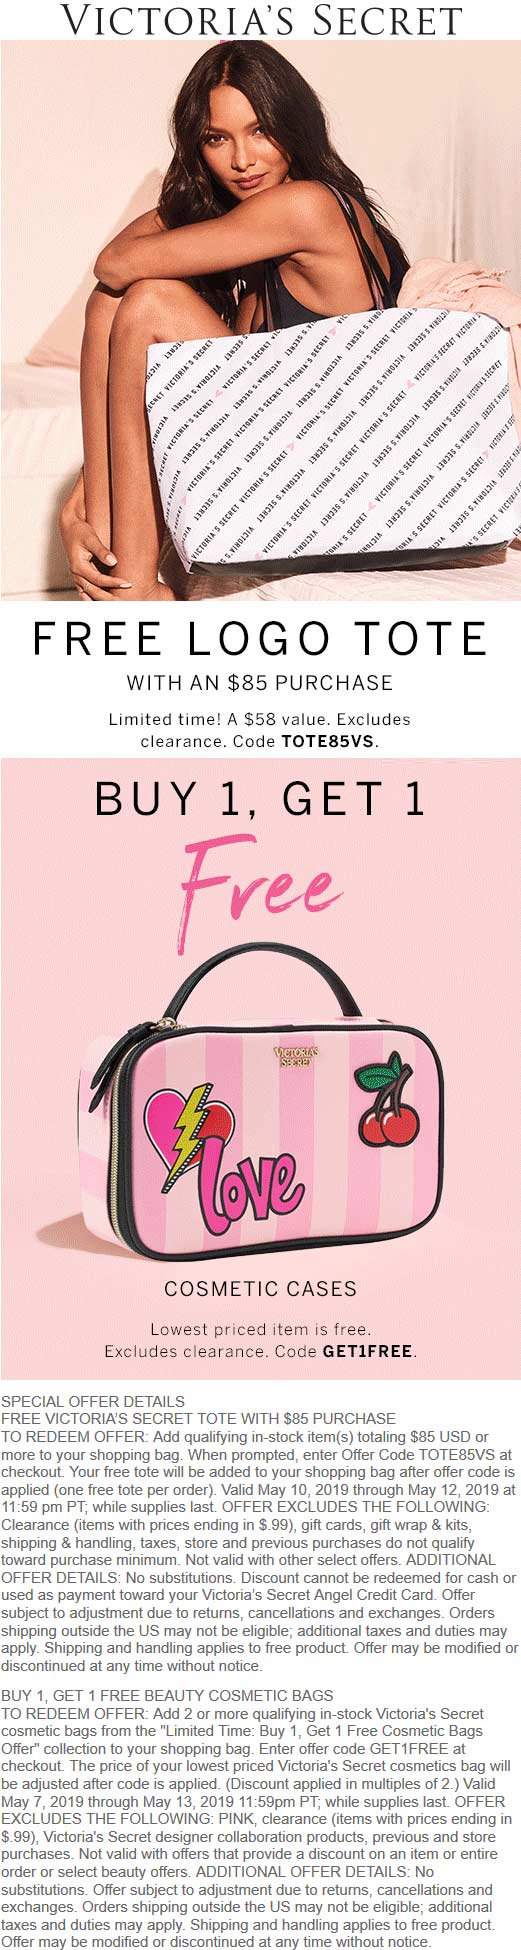 Victorias Secret Coupon May 2019 Free tote & more at Victorias Secret, or online via promo code TOTE85VS